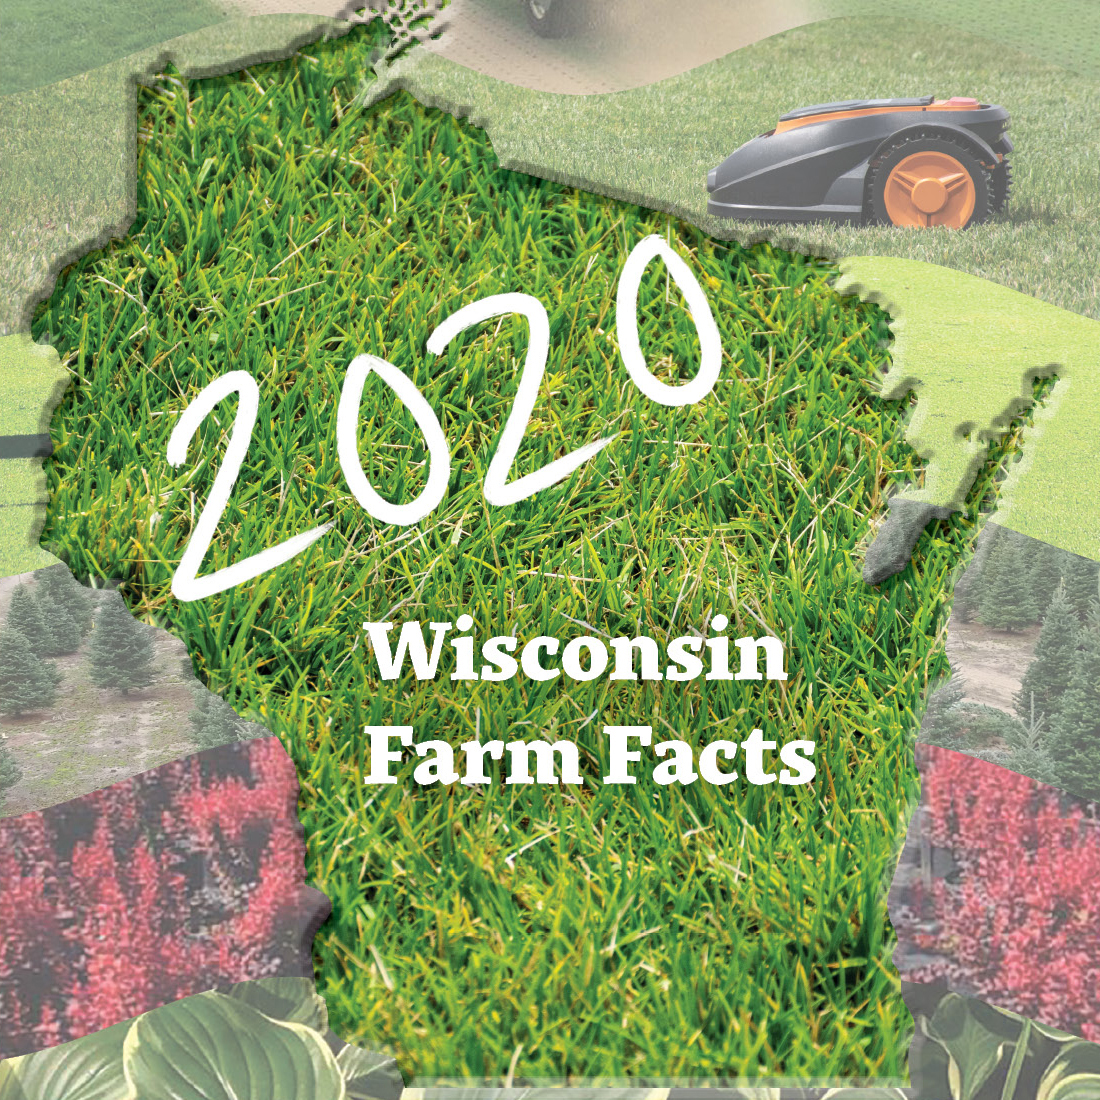 Wisconsin Farm Facts 2020_cover thumb